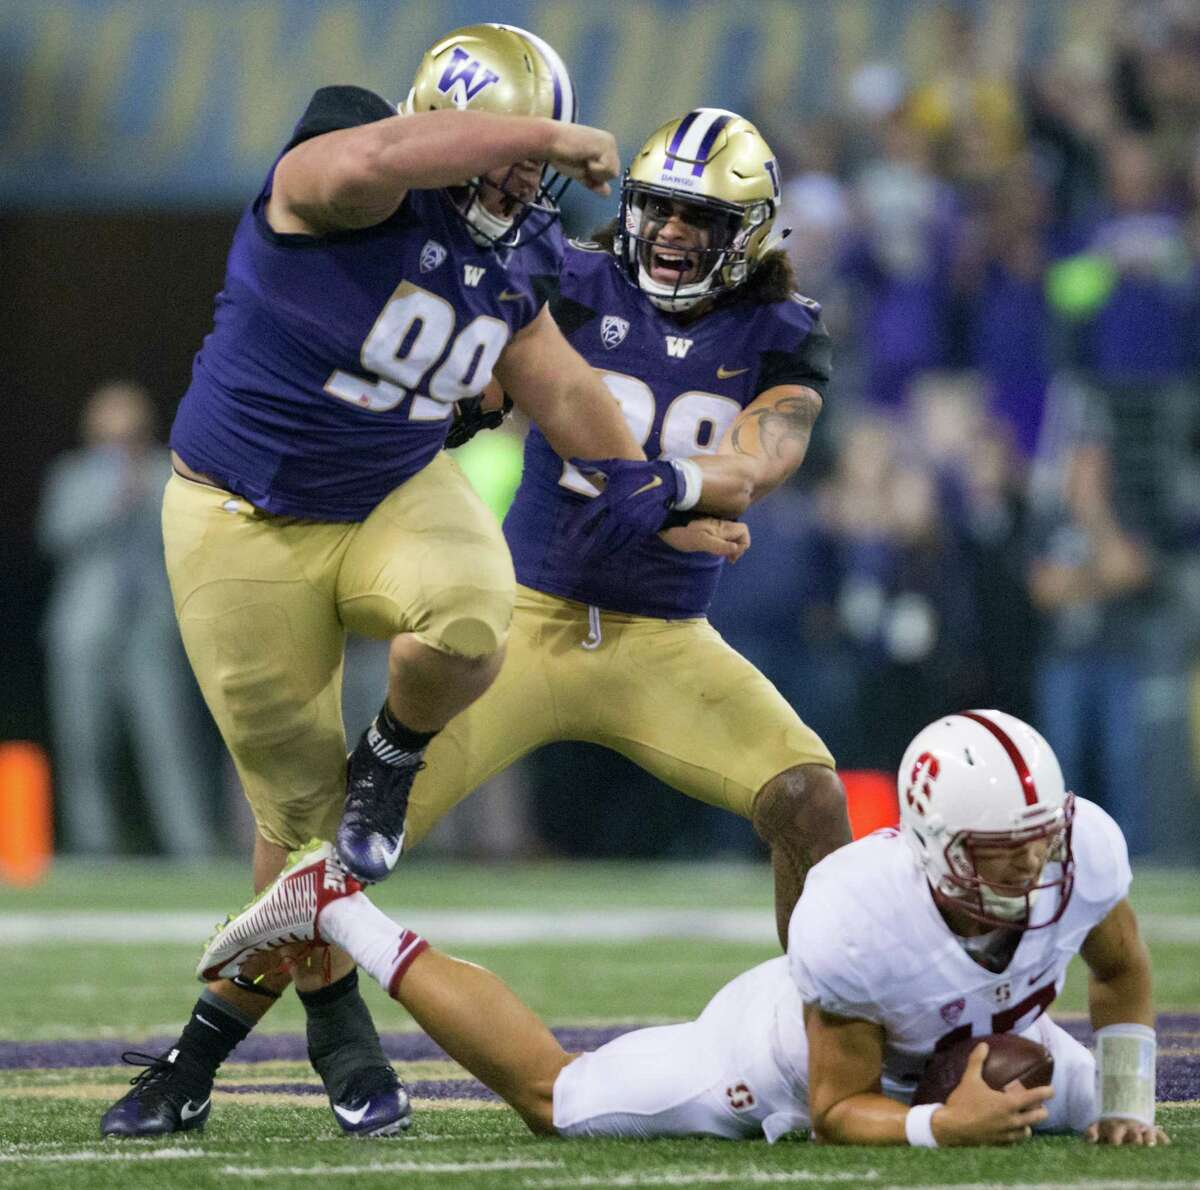 University of Washington Linebacker Psalm Wooching joins defensive lineman Greg Gaines in celebration after Gaines tackled Stanford quarterback Ryan Burns in the second quarter at Husky Stadium, Friday, Sept. 30, 2016.